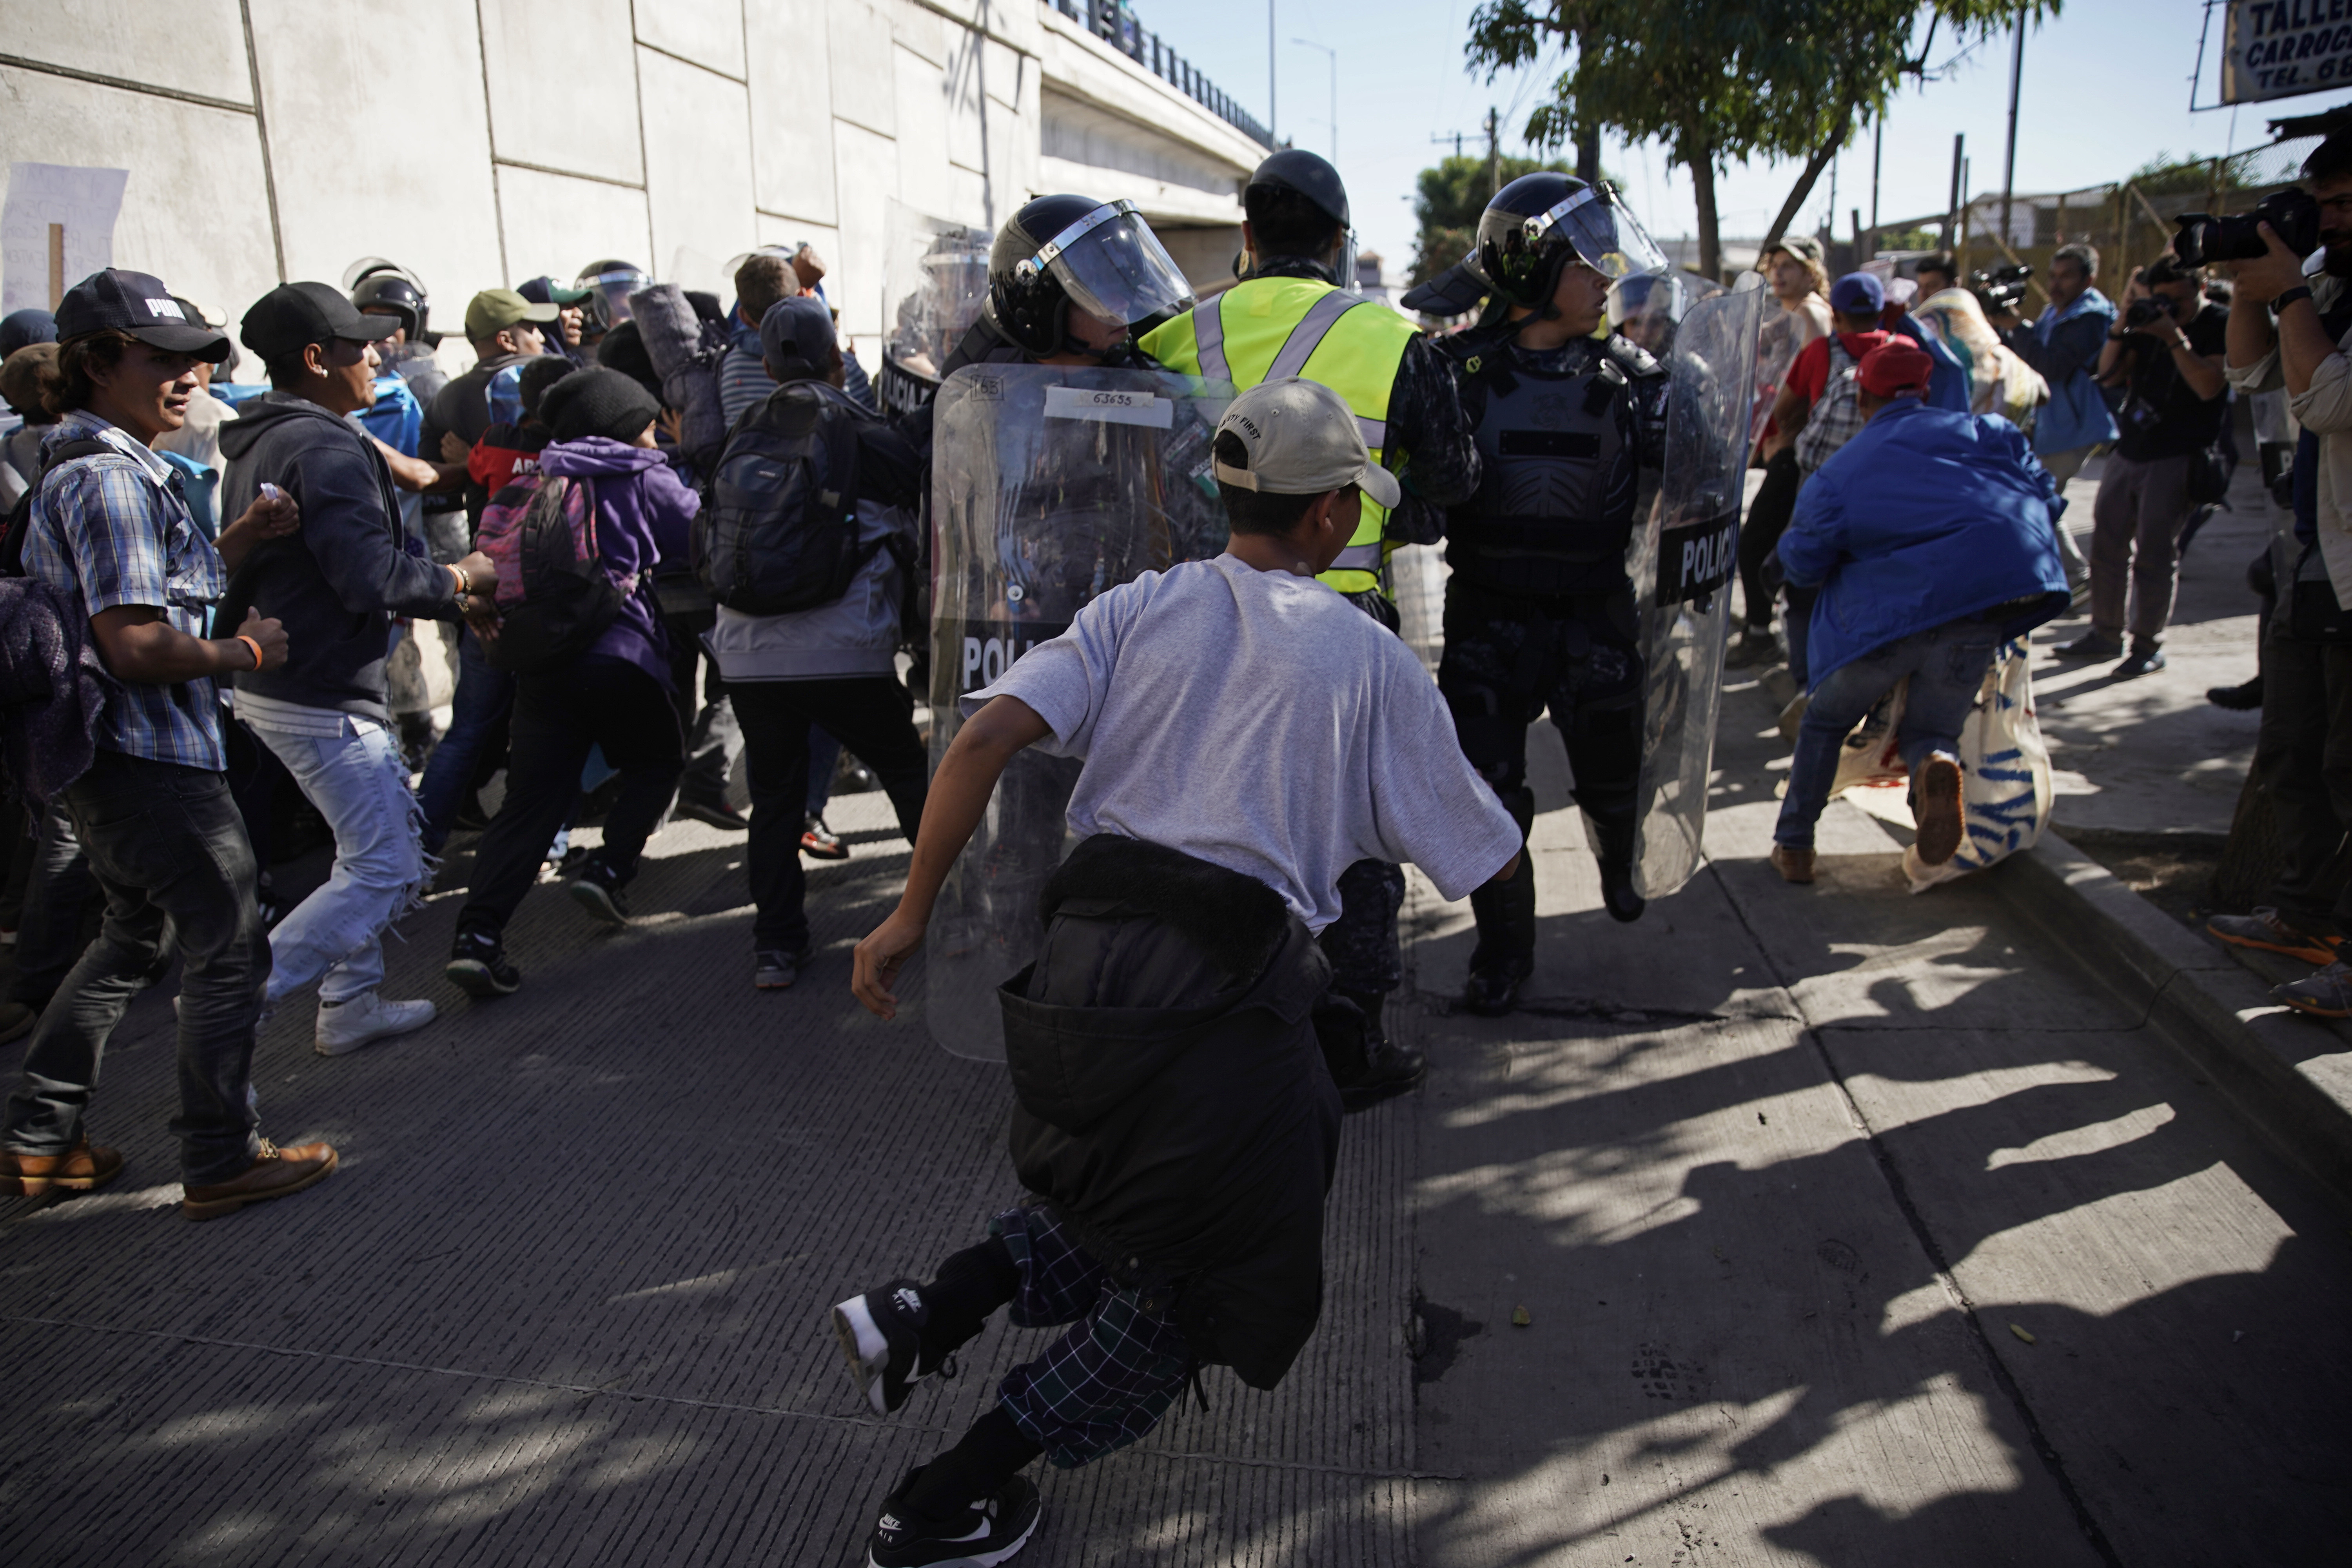 Migrants break past a line of police as they run toward the Chaparral border crossing in Tijuana, Mexico, Nov. 25, 2018, near the San Ysidro entry point into the U.S.